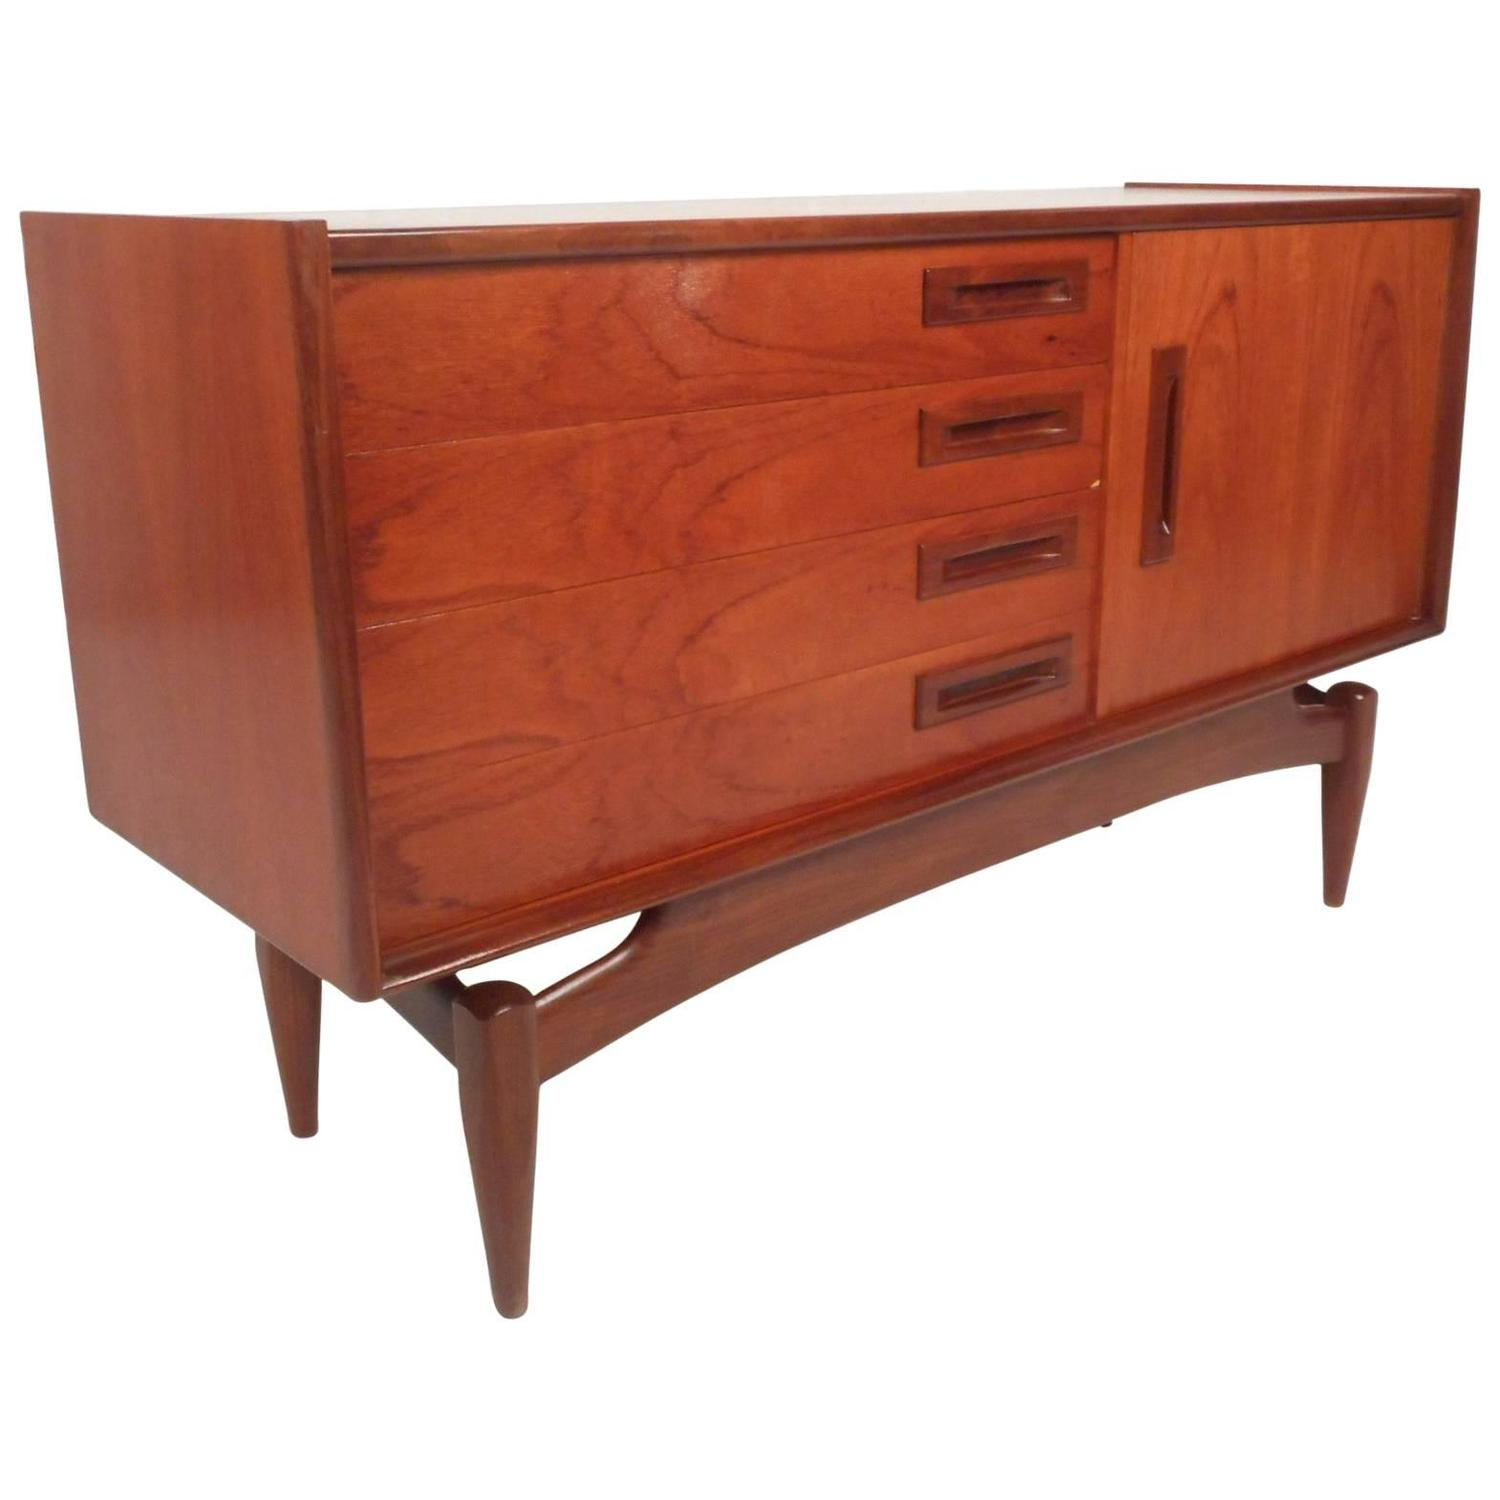 Small Mid Century Modern Credenza With A Sculpted Base For Sale At 1stdibs